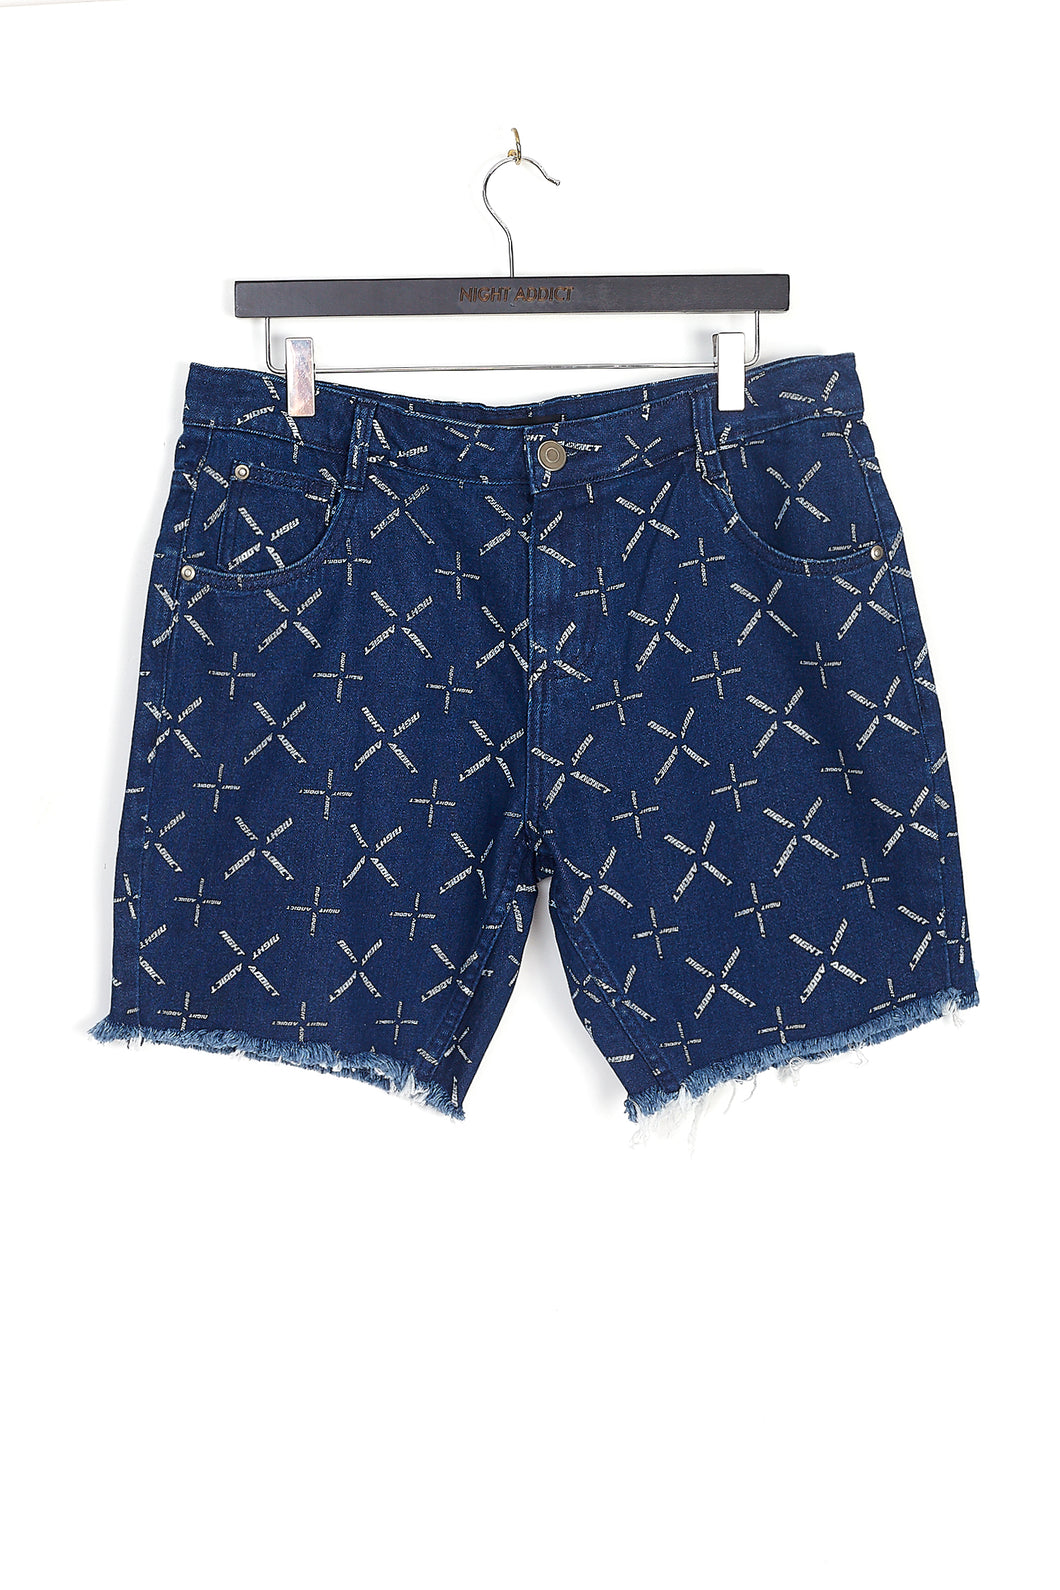 NIGHT ADDICT BLUE WITH WHITE ALL OVER PRINT DENIM SHORTS FRONT